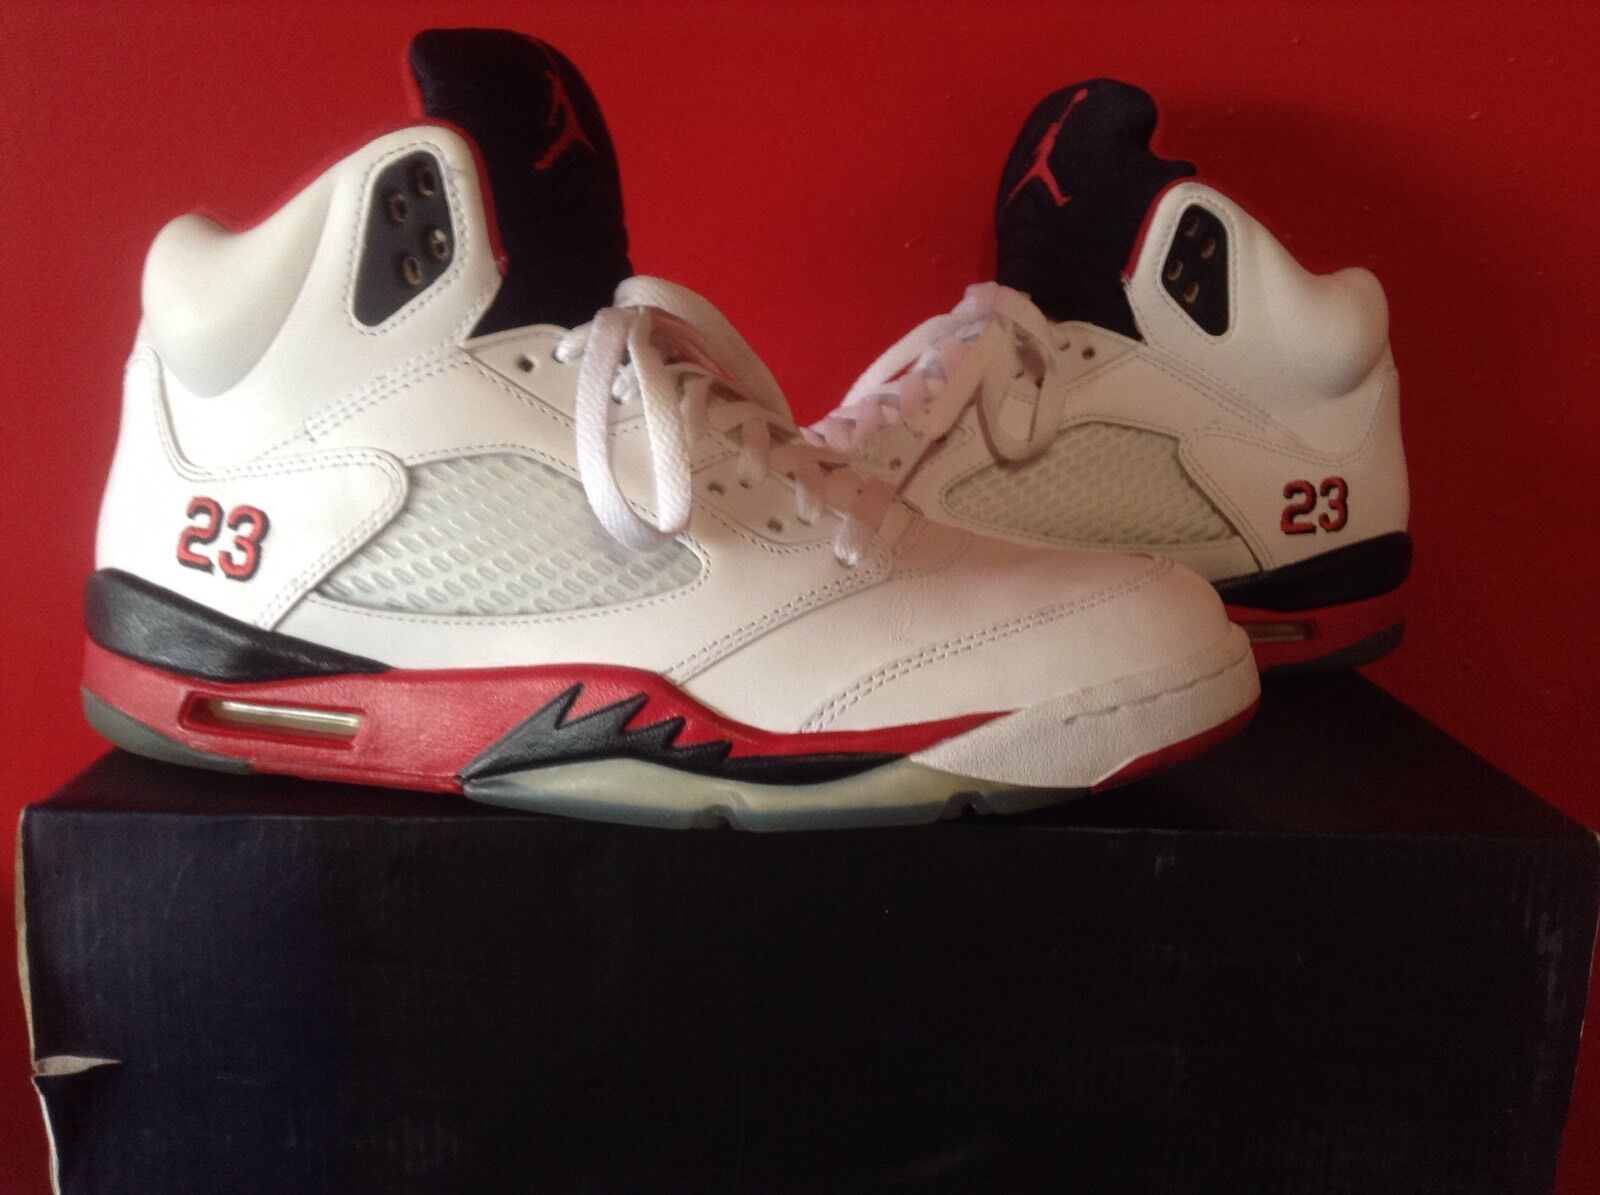 AIR JORDAN V FIRE RED SZ 11 W/box Immaculate Shape